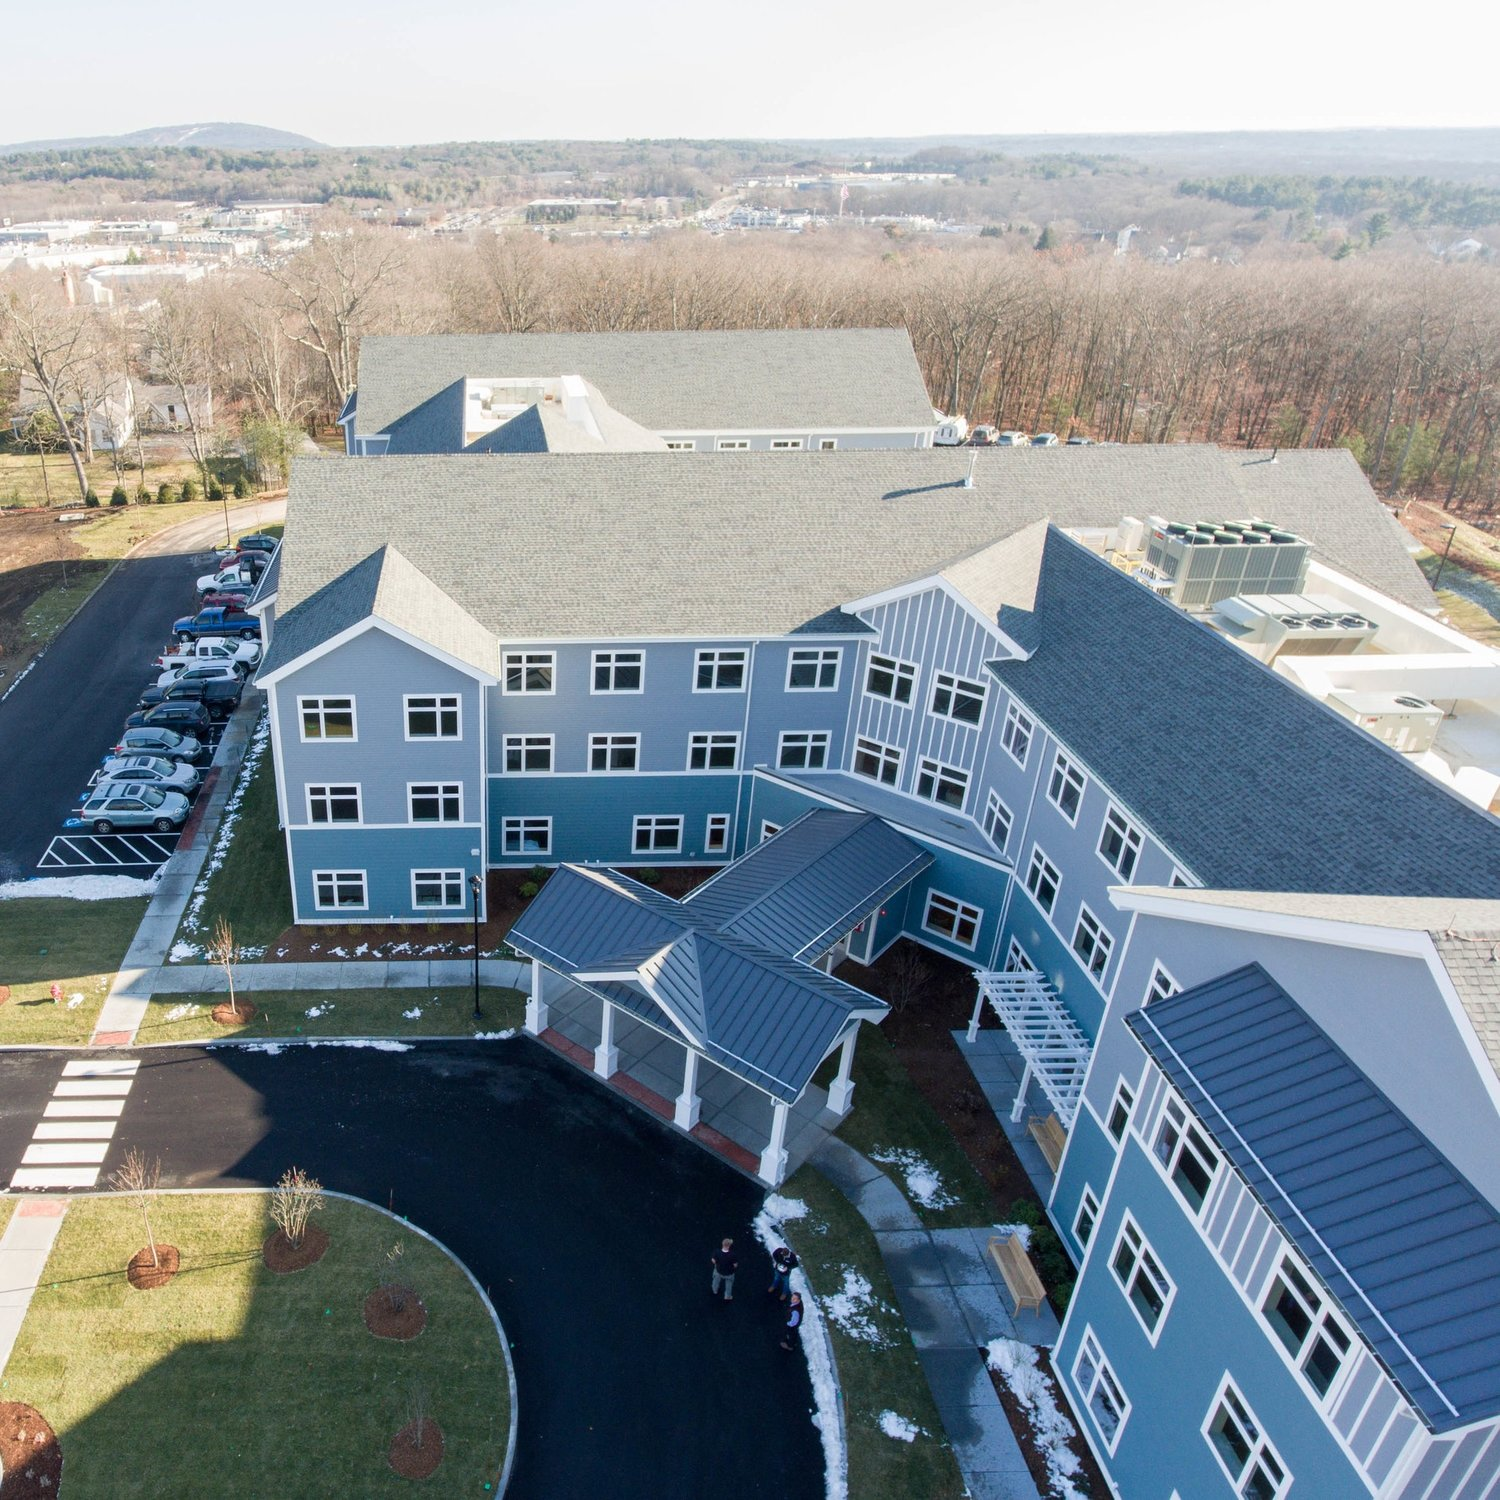 Benchmark Assisted Living Facility  Norwood, Massachusetts 79,000 sqft Assisted Living Facility Contractor: Callahan & Metro Walls, Inc.